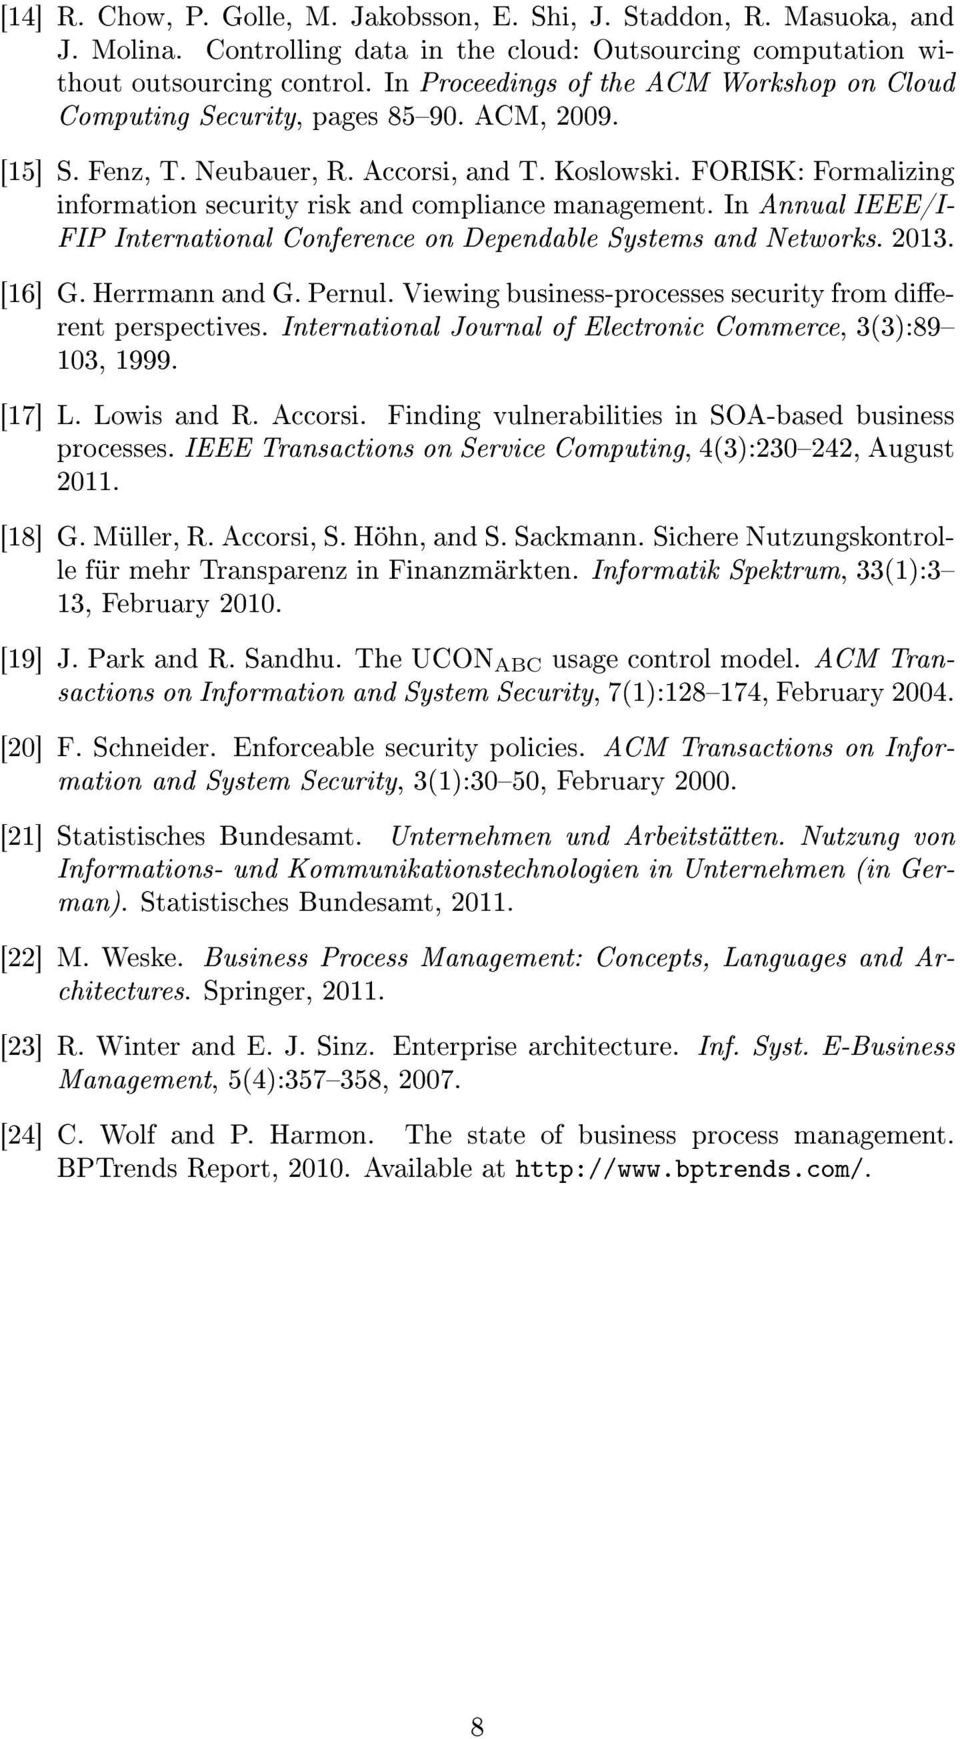 FORISK: Formalizing information security risk and compliance management. In Annual IEEE/I- FIP International Conference on Dependable Systems and Networks. 2013. [16] G. Herrmann and G. Pernul.